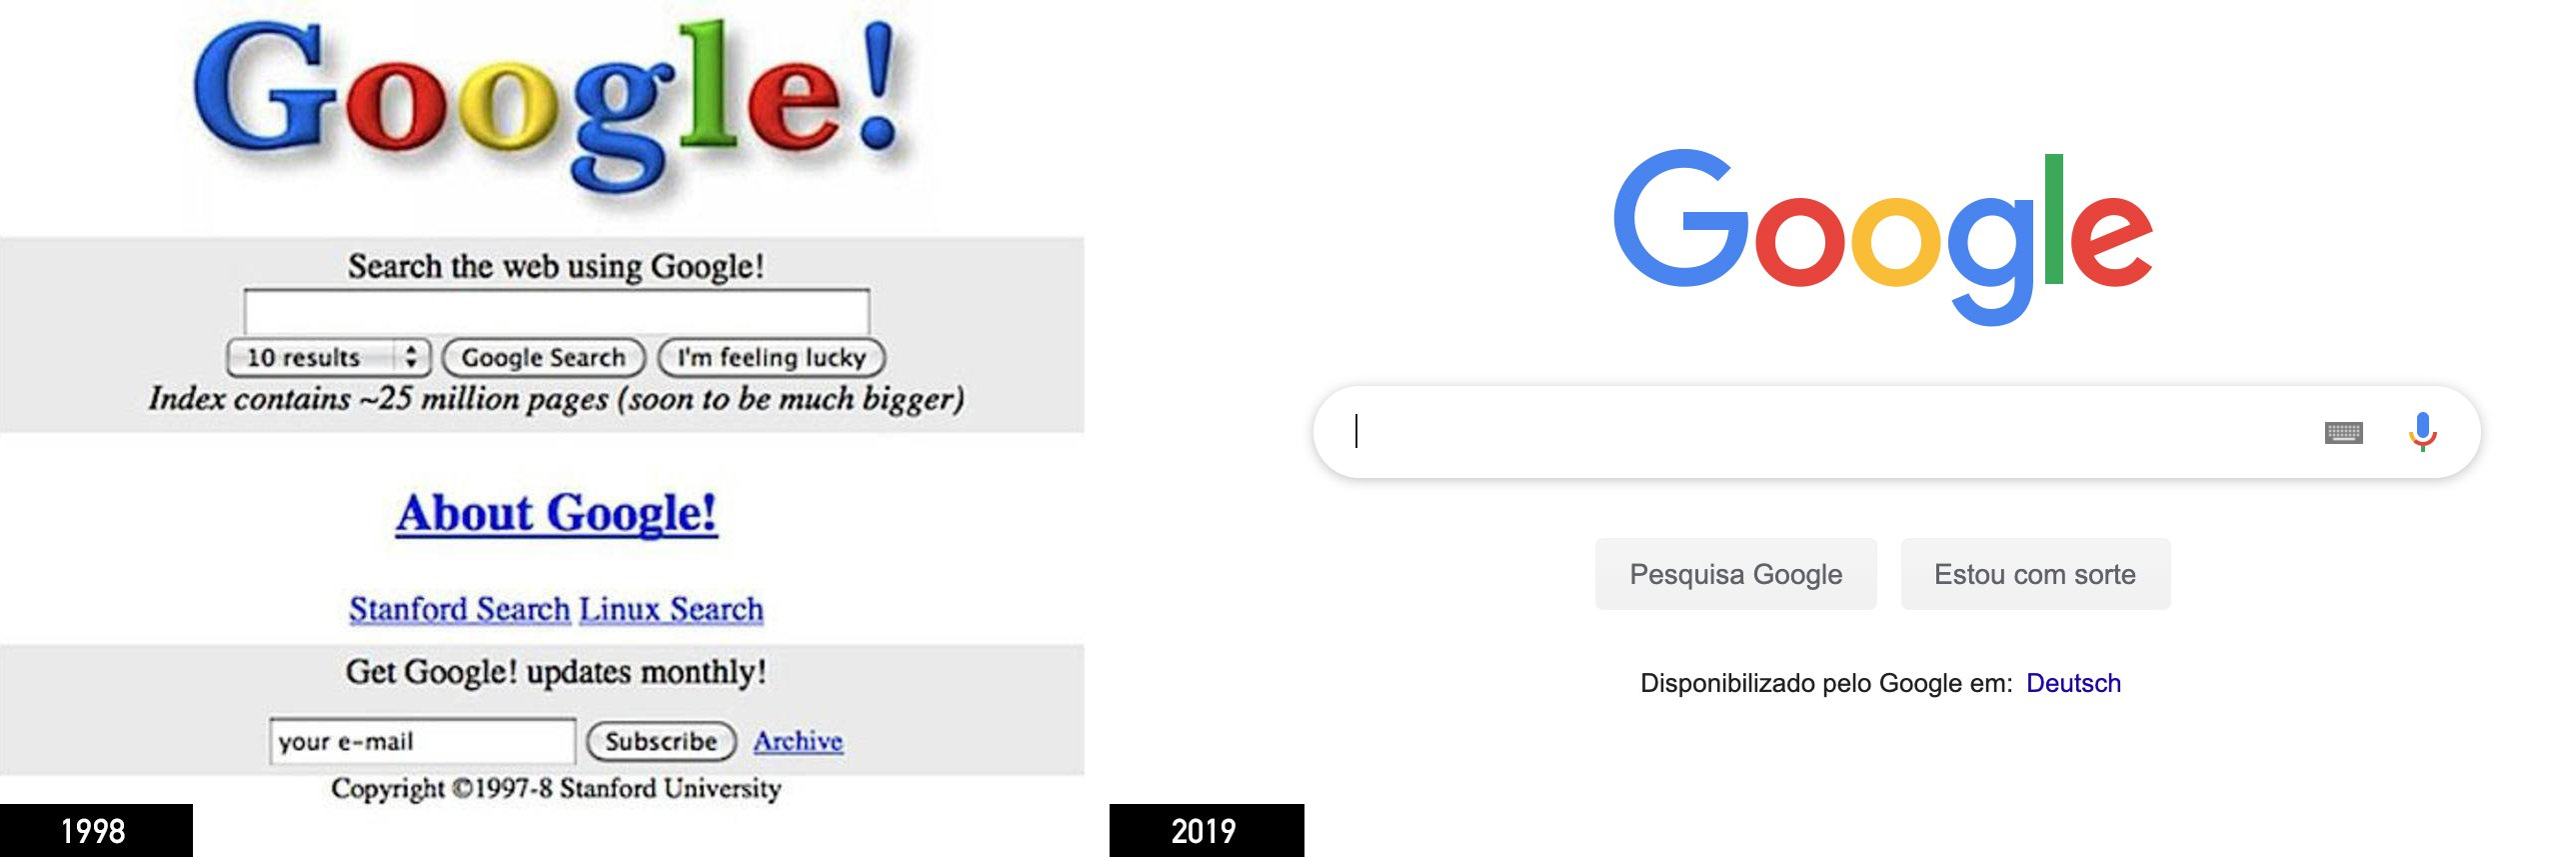 Google in 1998 and 2019